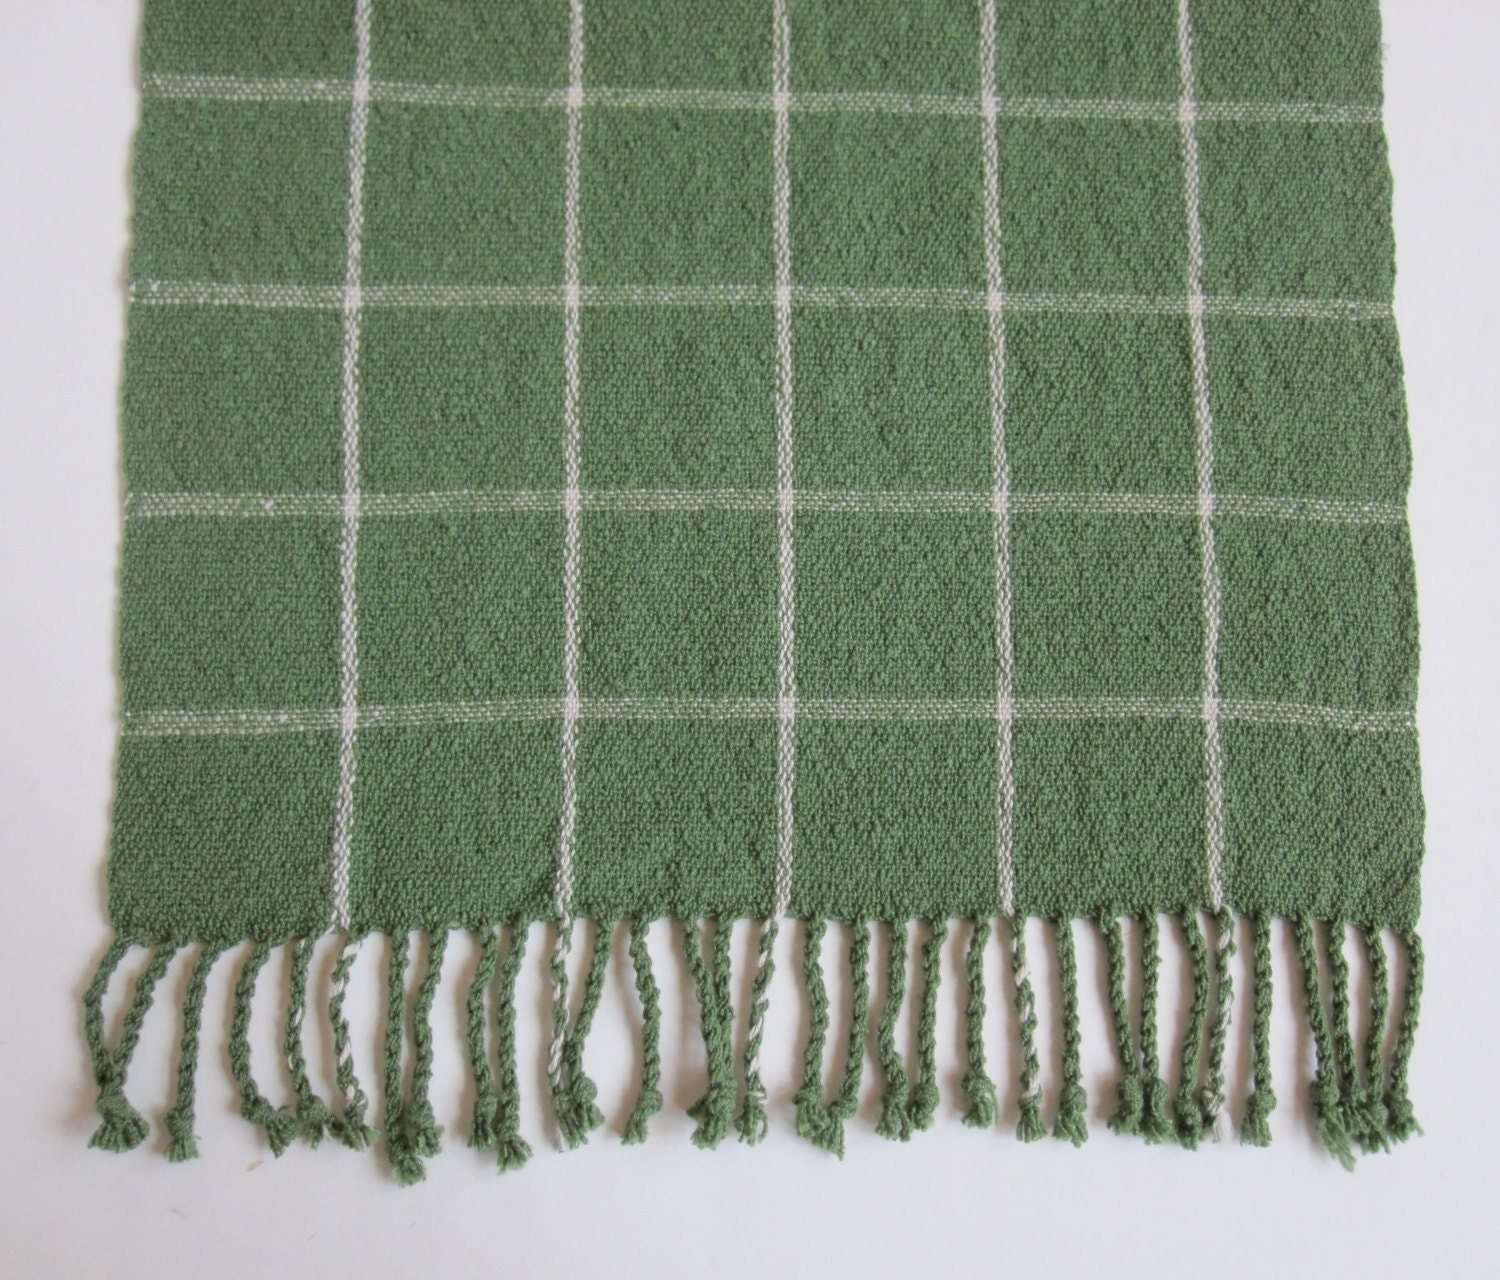 Handwoven Rustic Green Plaid Table Runner